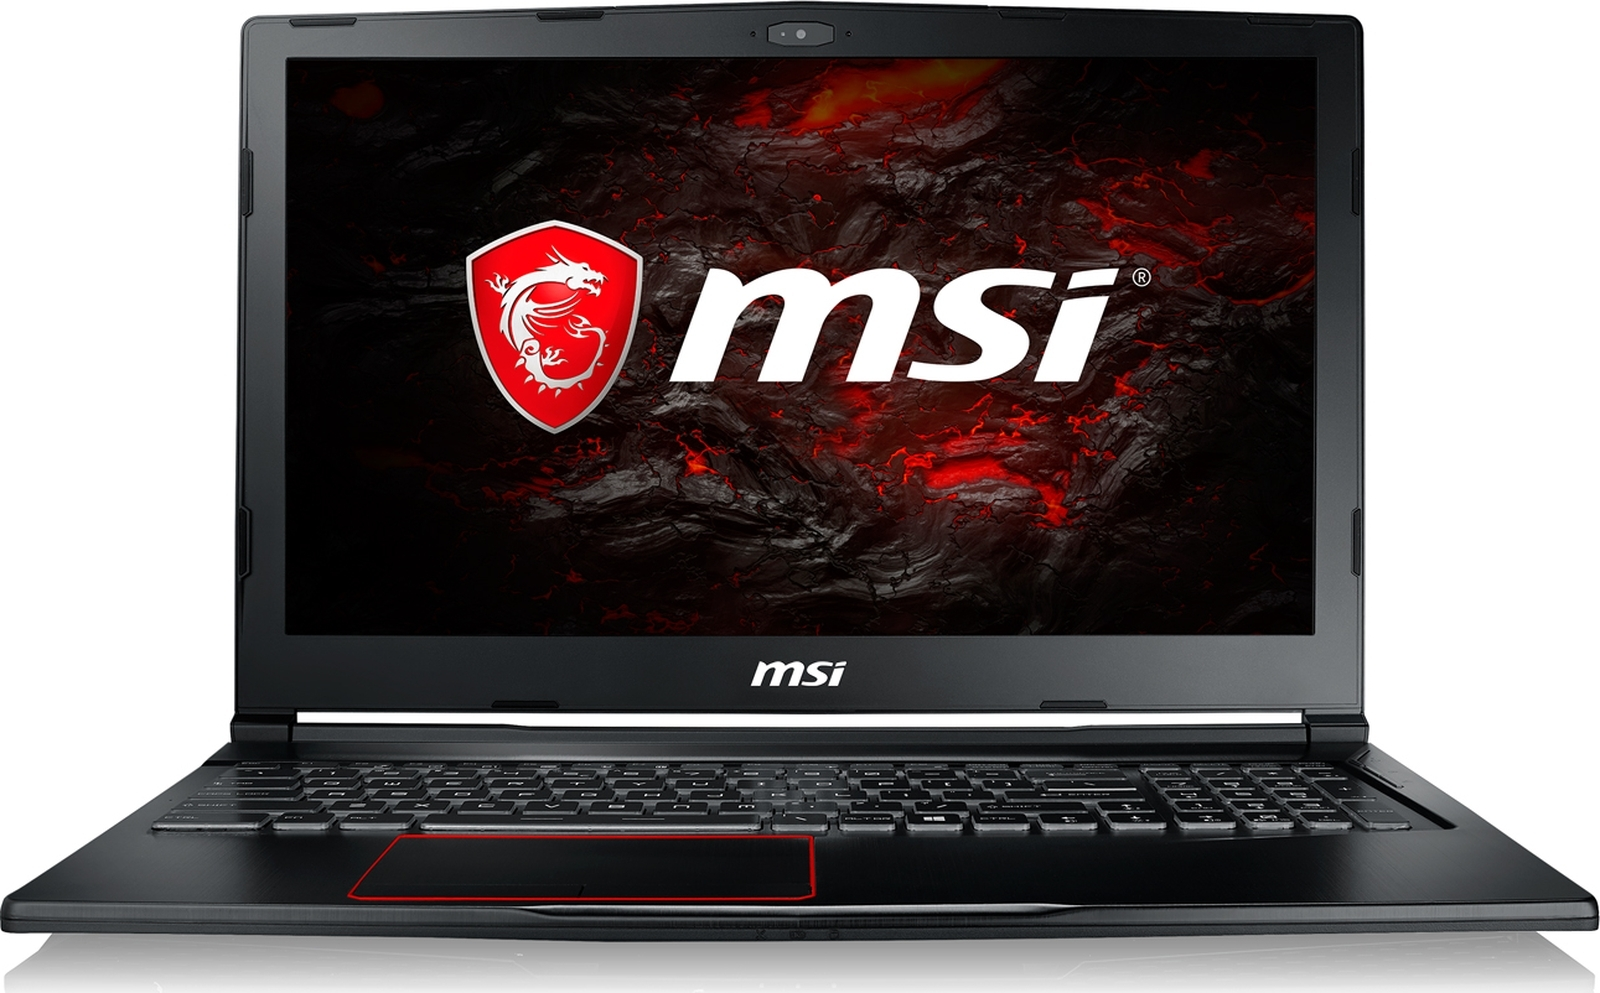 Игровой ноутбук MSI GE63 Raider RGB 8RE, 9S7-16P512-210, 15.6, черный msi ge63 8re 211xru raider rgb edition black